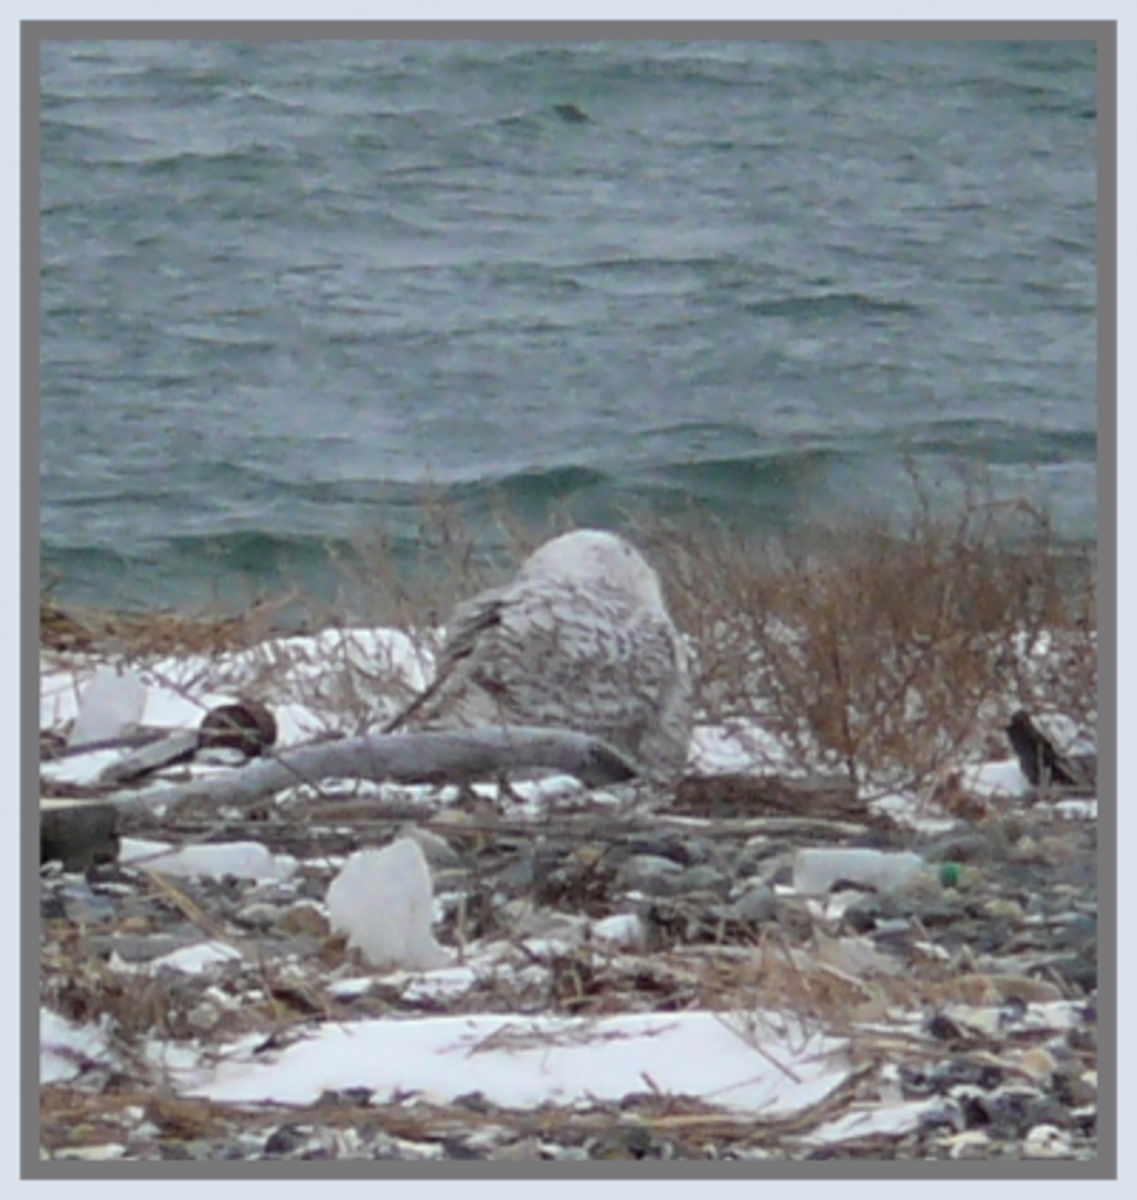 A Snowy Owl from the backside gazing out on the open water for prey